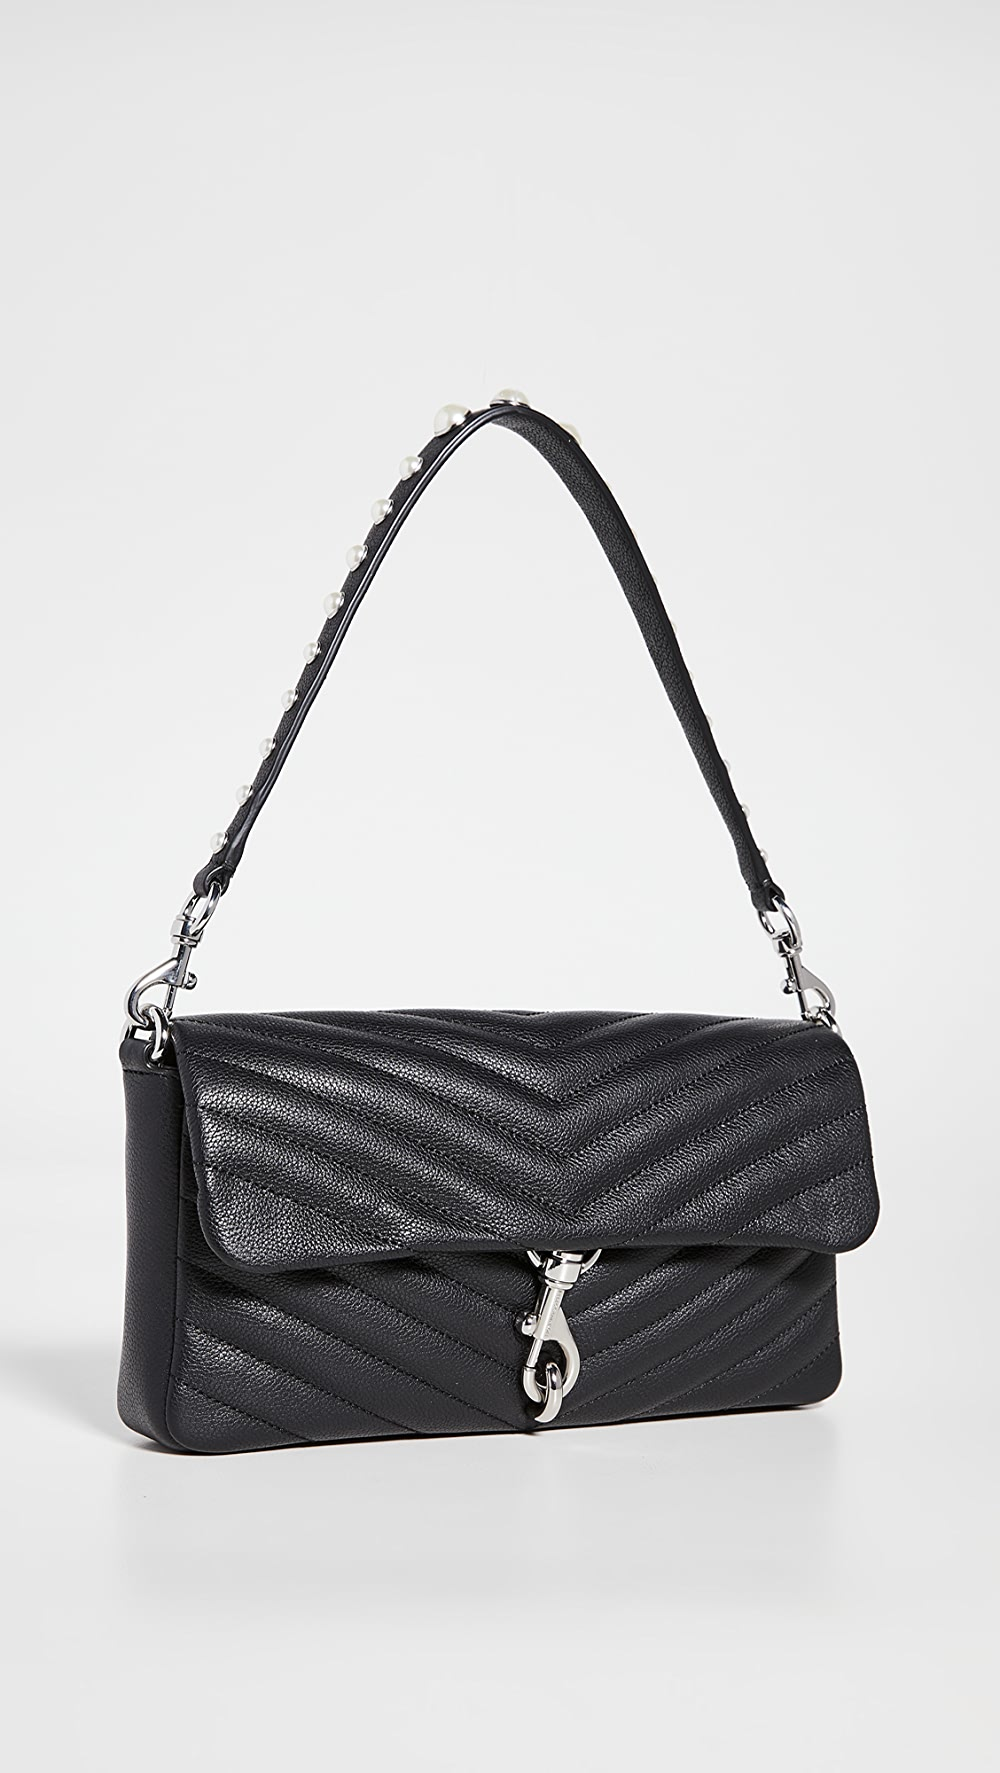 Careful Rebecca Minkoff - Edie Clutch With Pearl Strap Can Be Repeatedly Remolded.